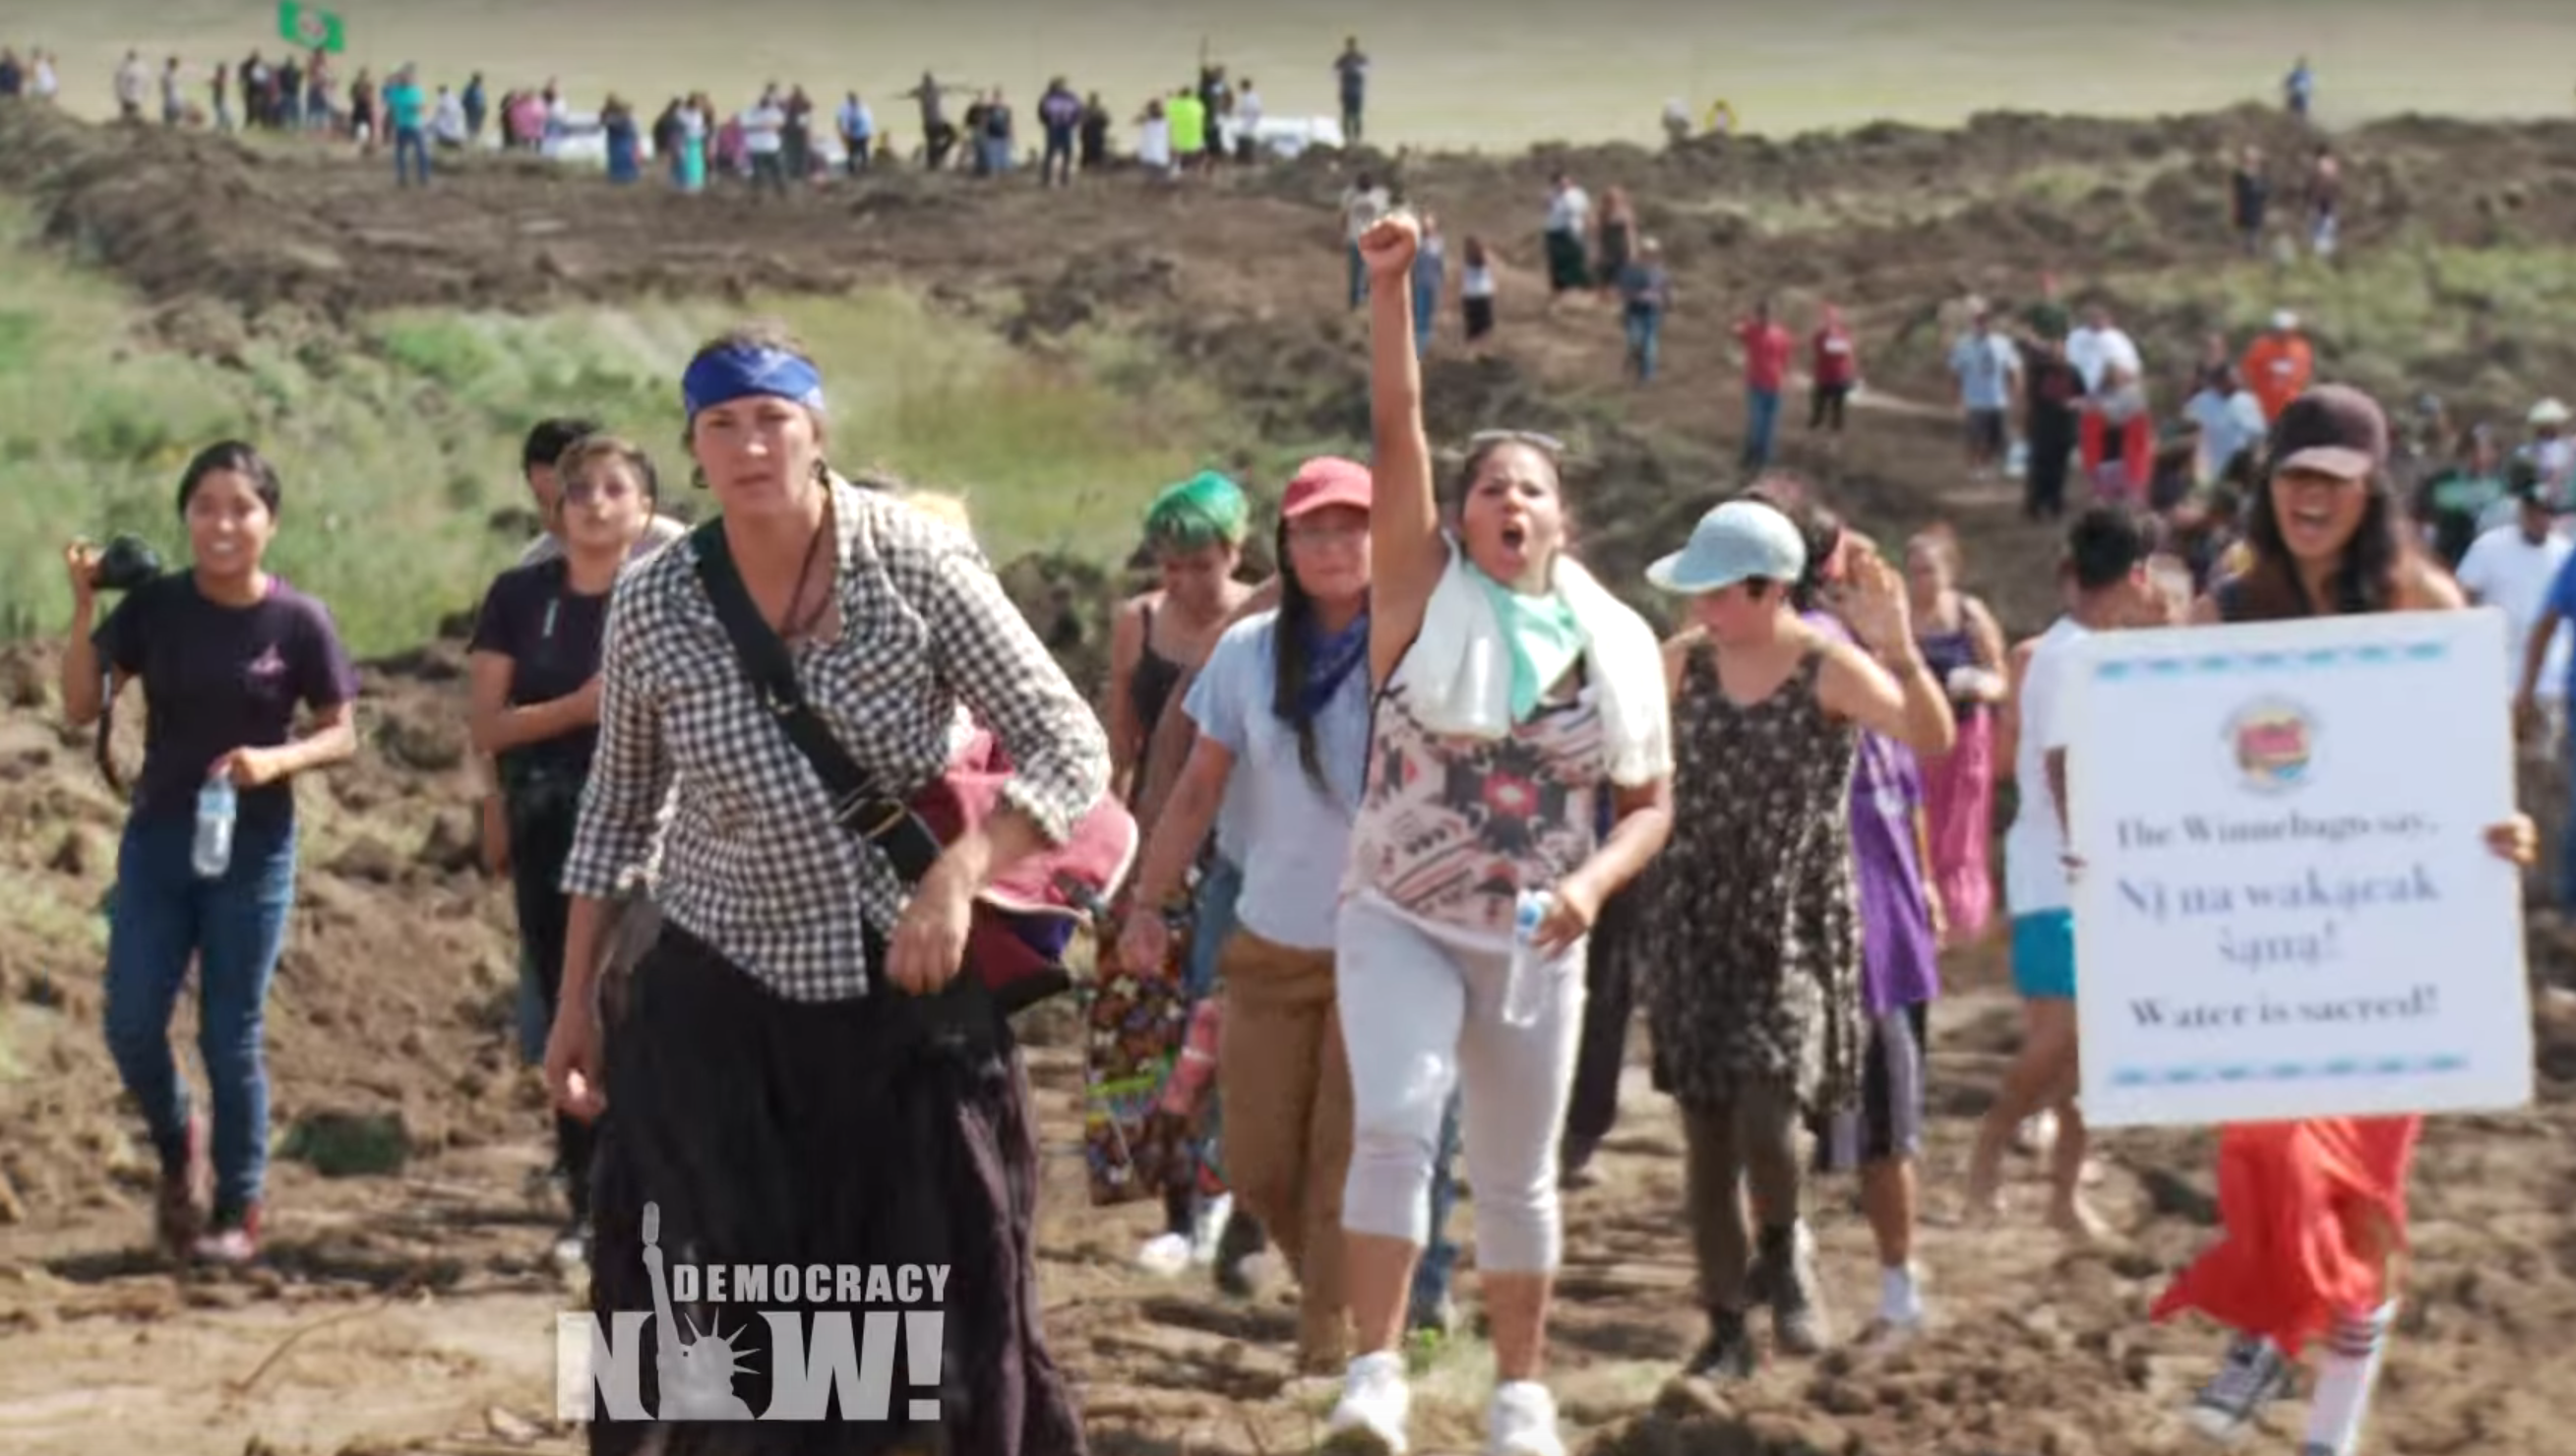 Attack Dogs and Pepper Spray Deployed on Native American 'Protectors' in Dakota Access Pipeline Fight